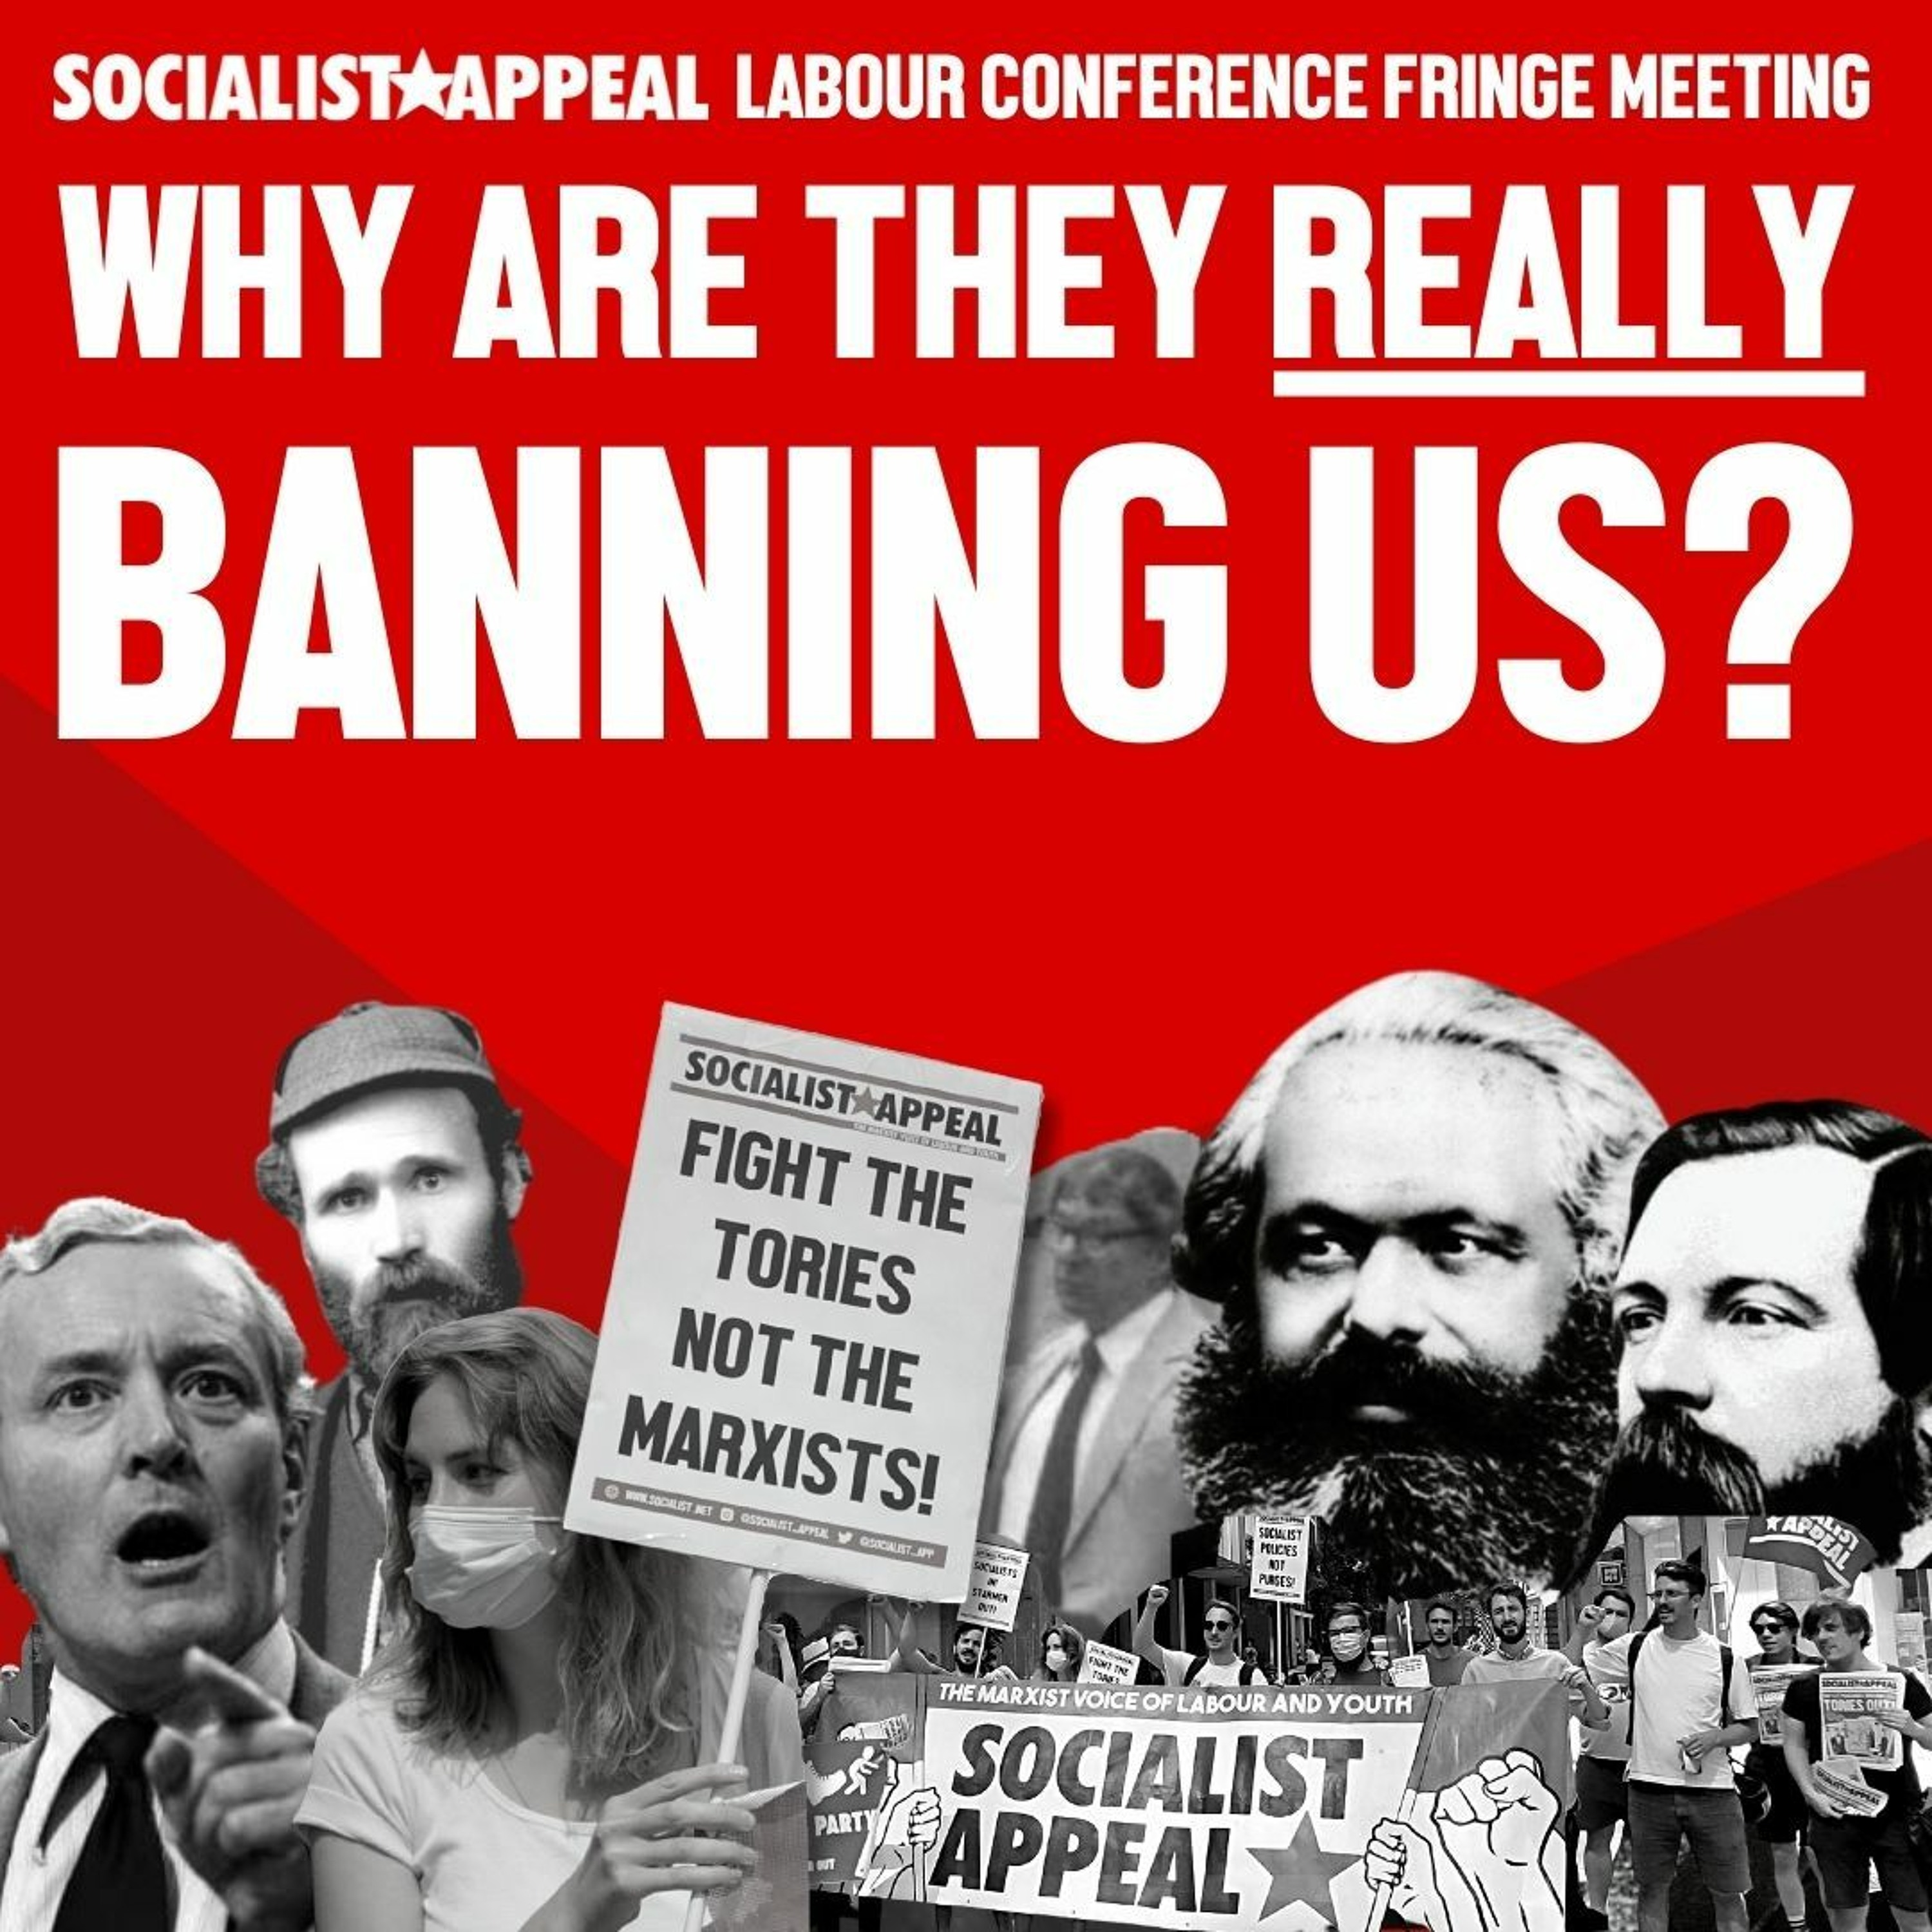 Why are they really banning us? | Socialist Appeal Labour Conference 2021 fringe meeting